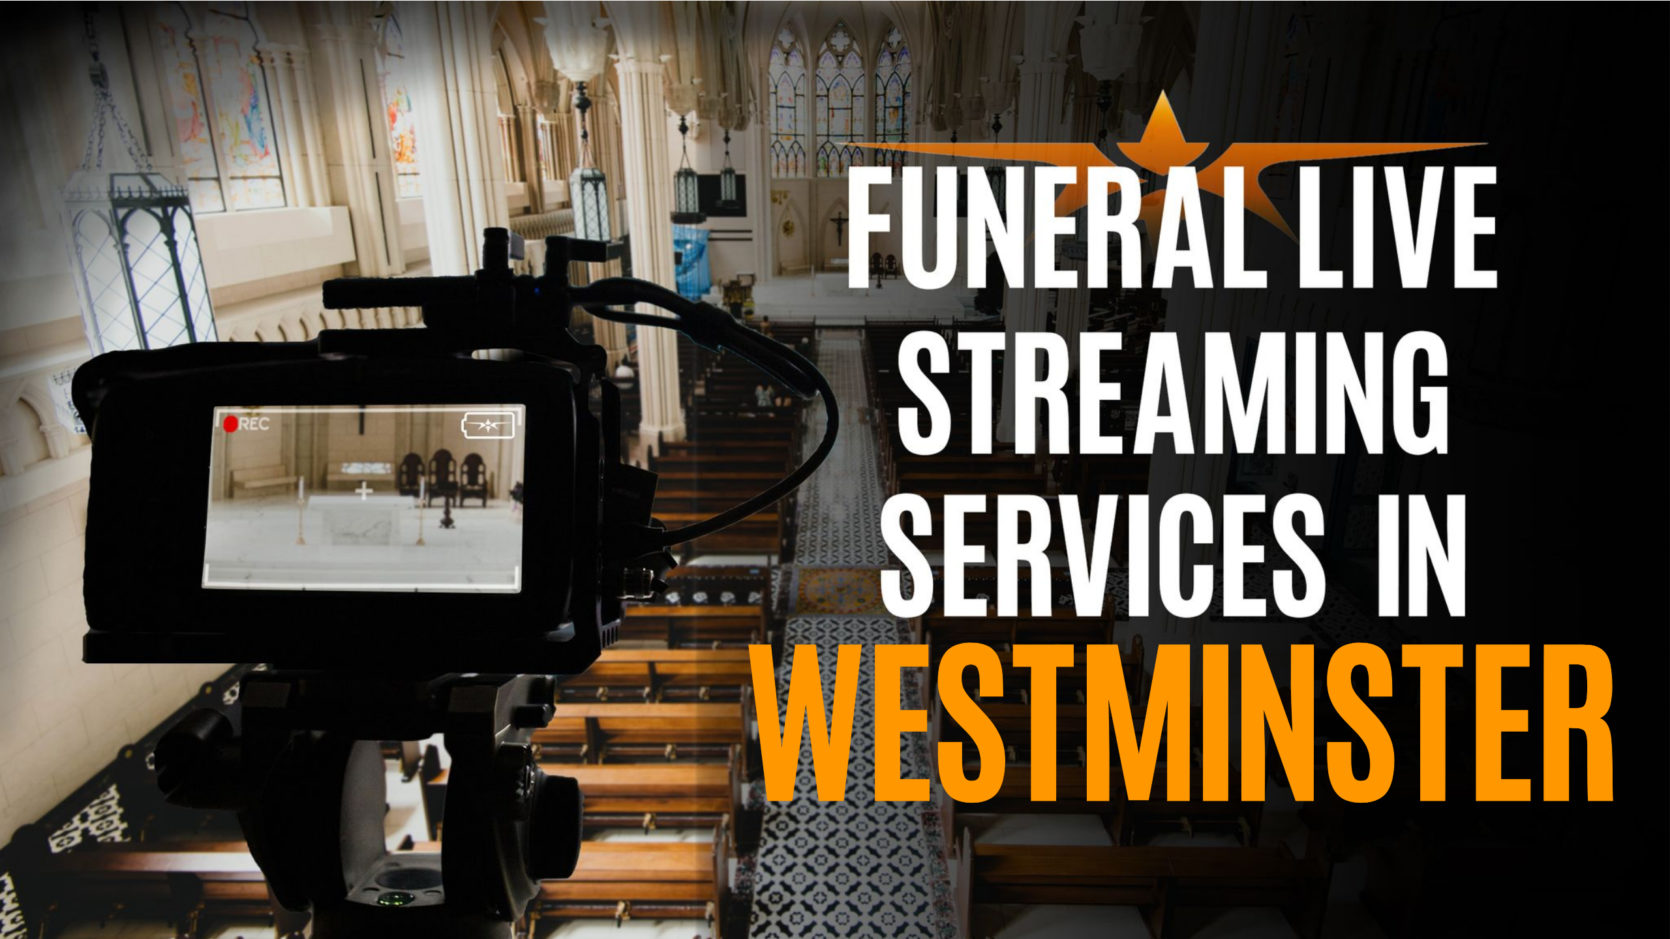 Funeral Live Streaming Services in Westminster